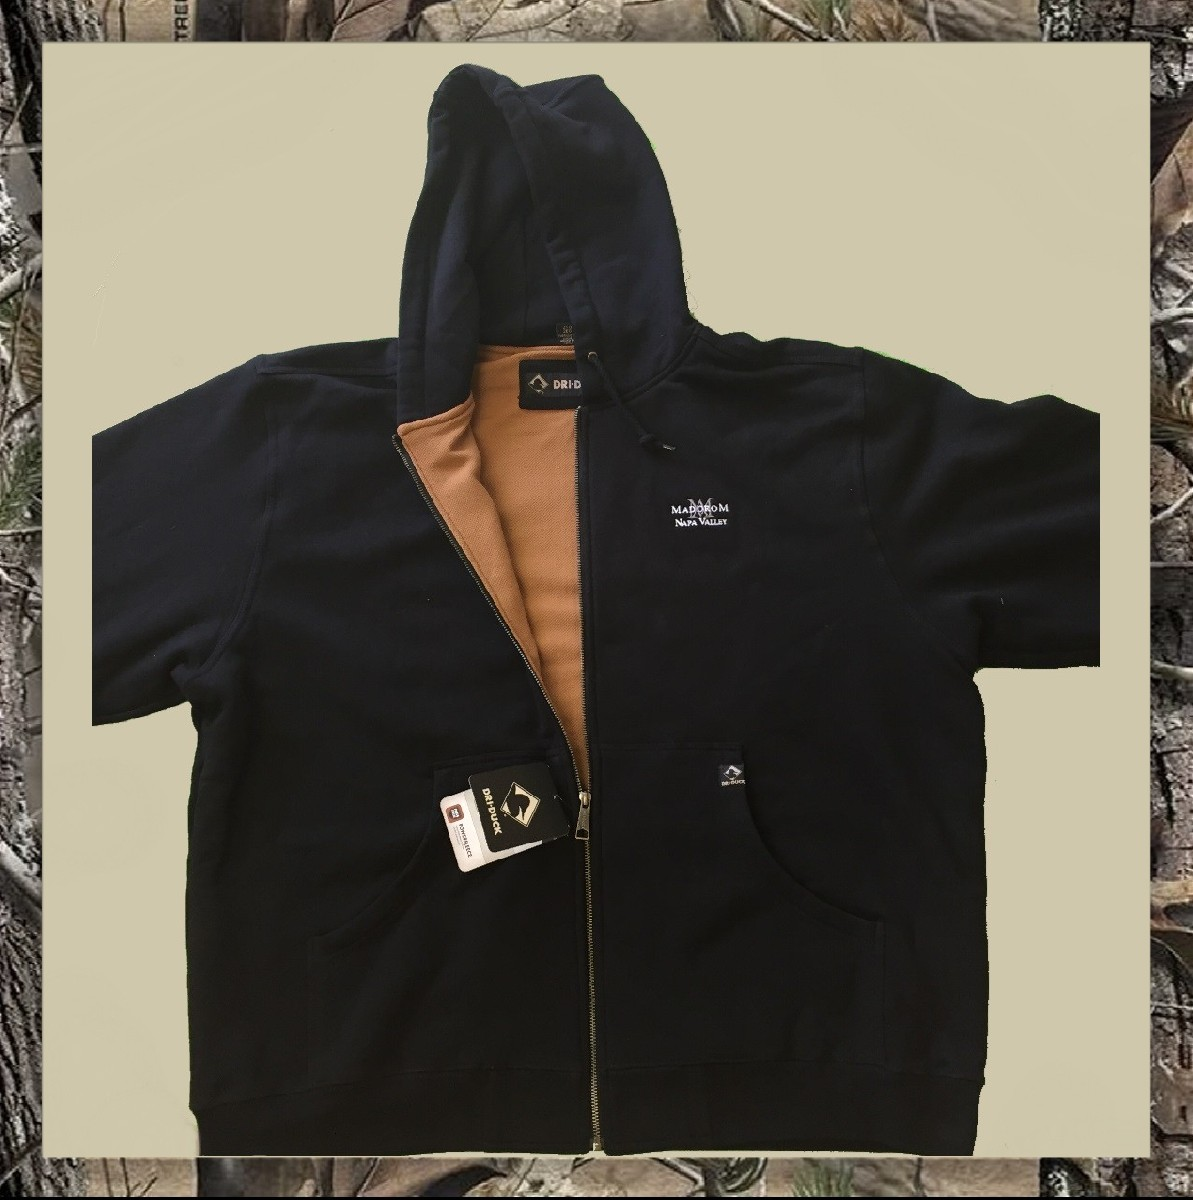 MadoroM Zipped Hoodie Product Image